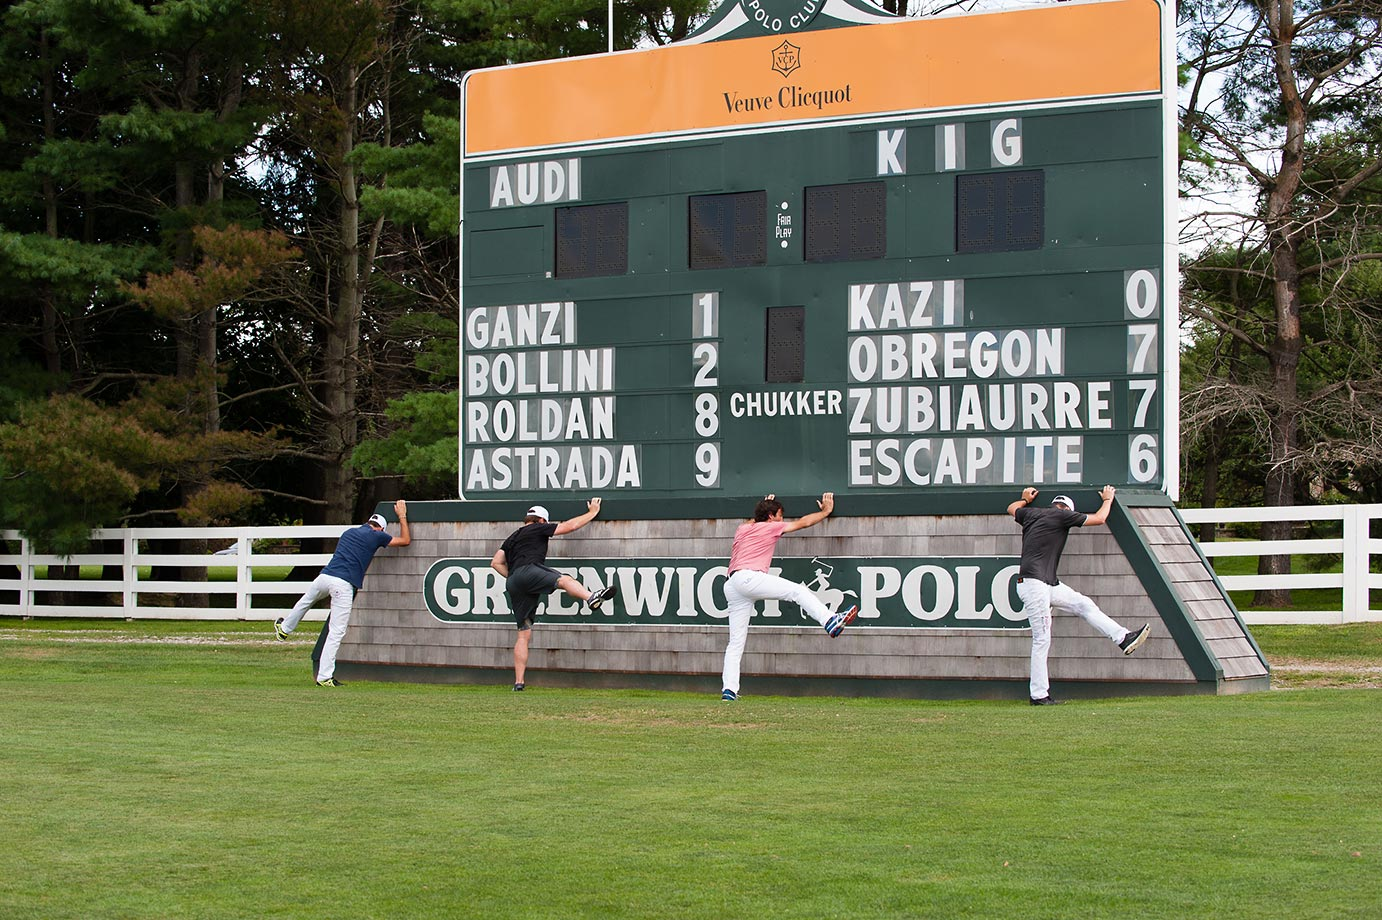 The Audi Polo Team warms up for its match against KIG—the first public match of the 2015 East Coast Open Polo Tournament.  From left to right are Nic Roldan, Marc Ganzi, Miguel Novilla Astrada and Juancito Bollini. Audi wins 11-6.